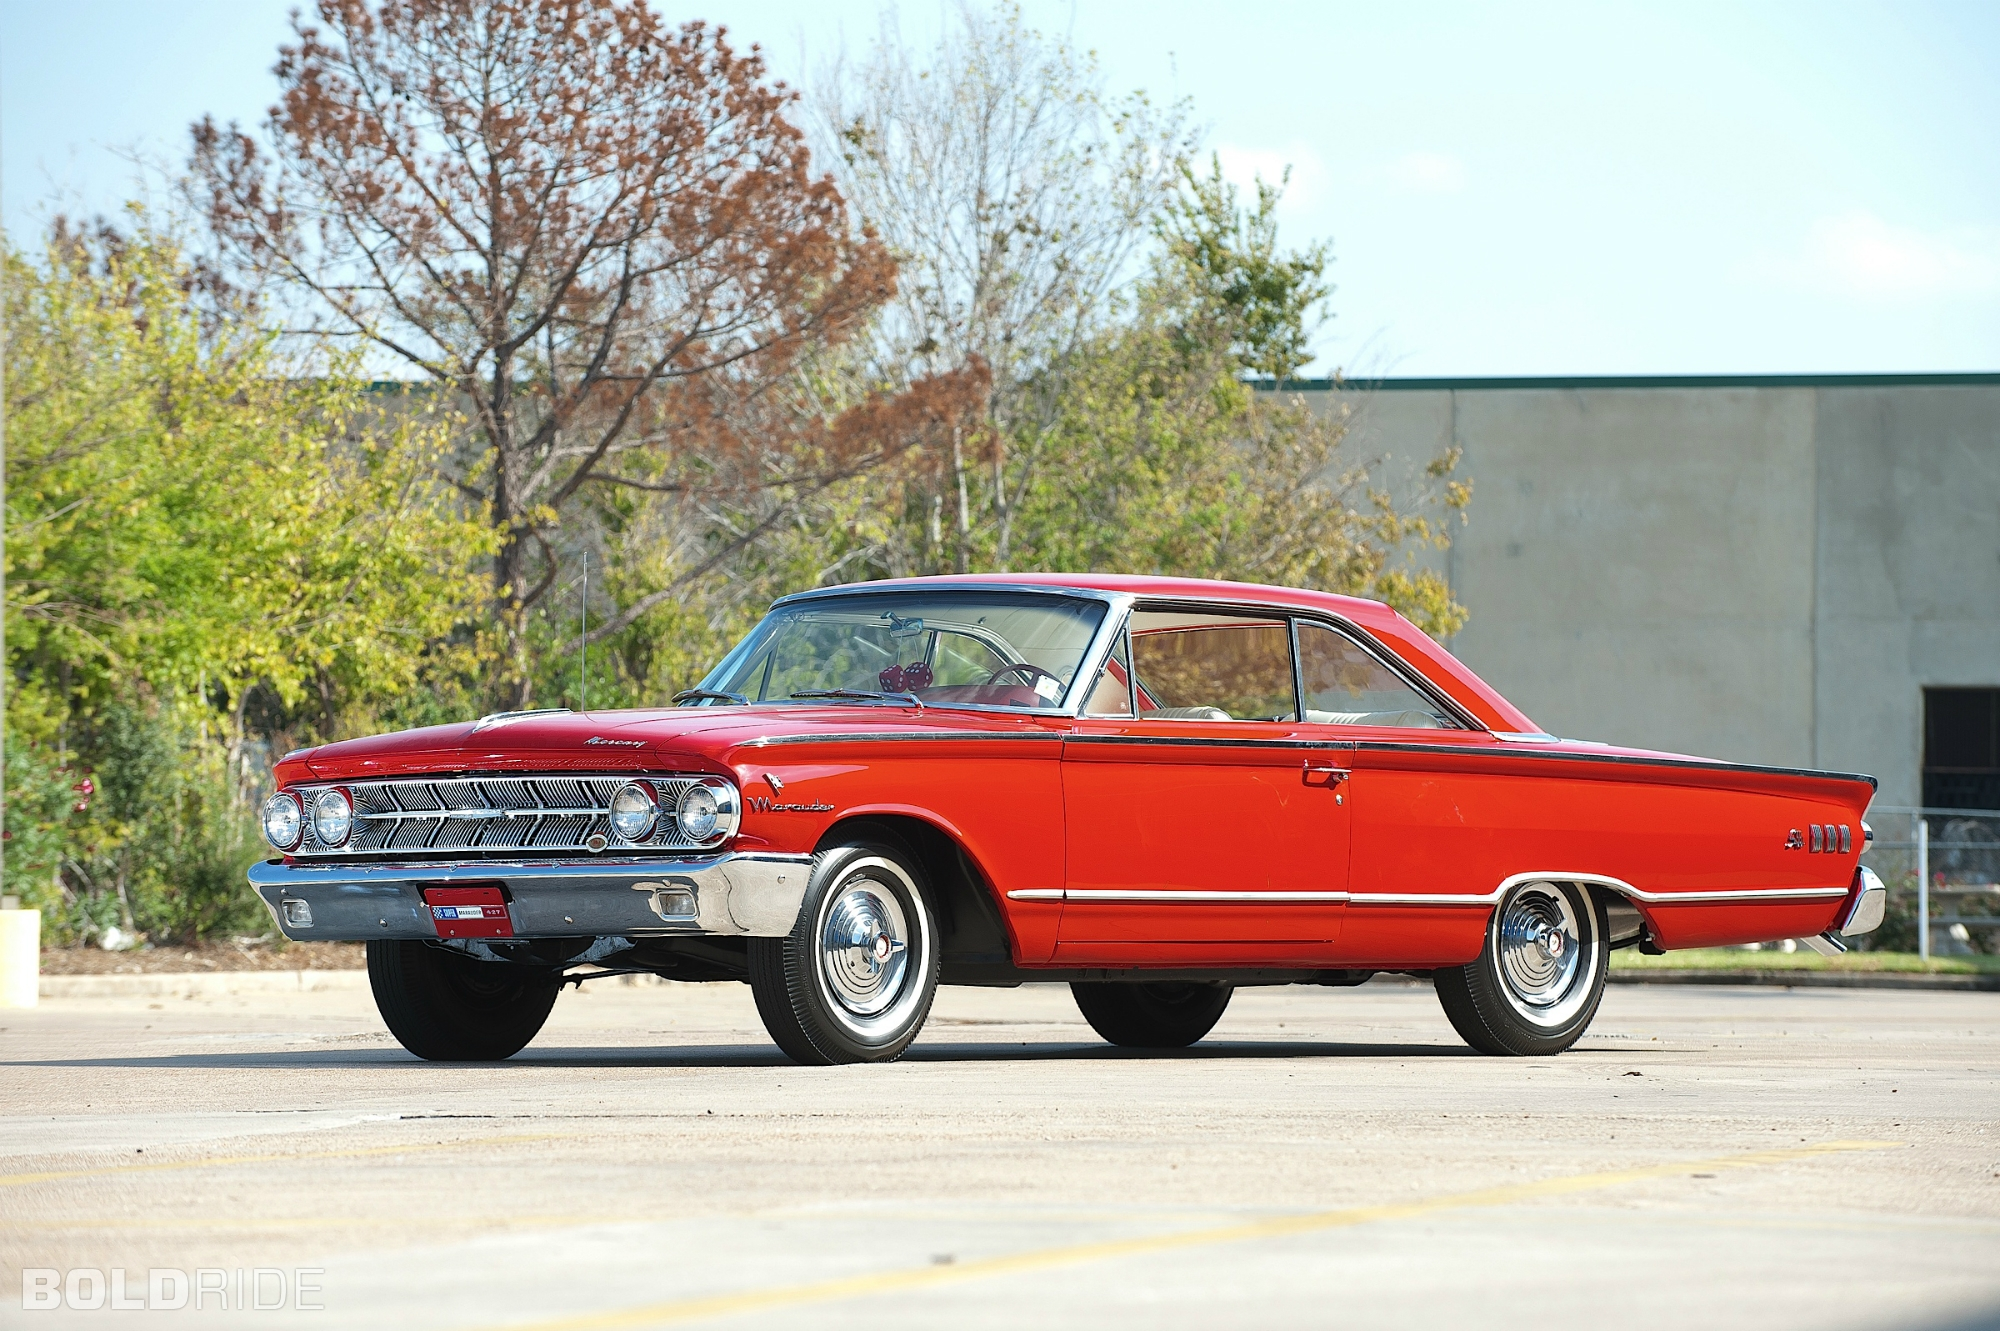 Ford Ranchero 1972 images #728